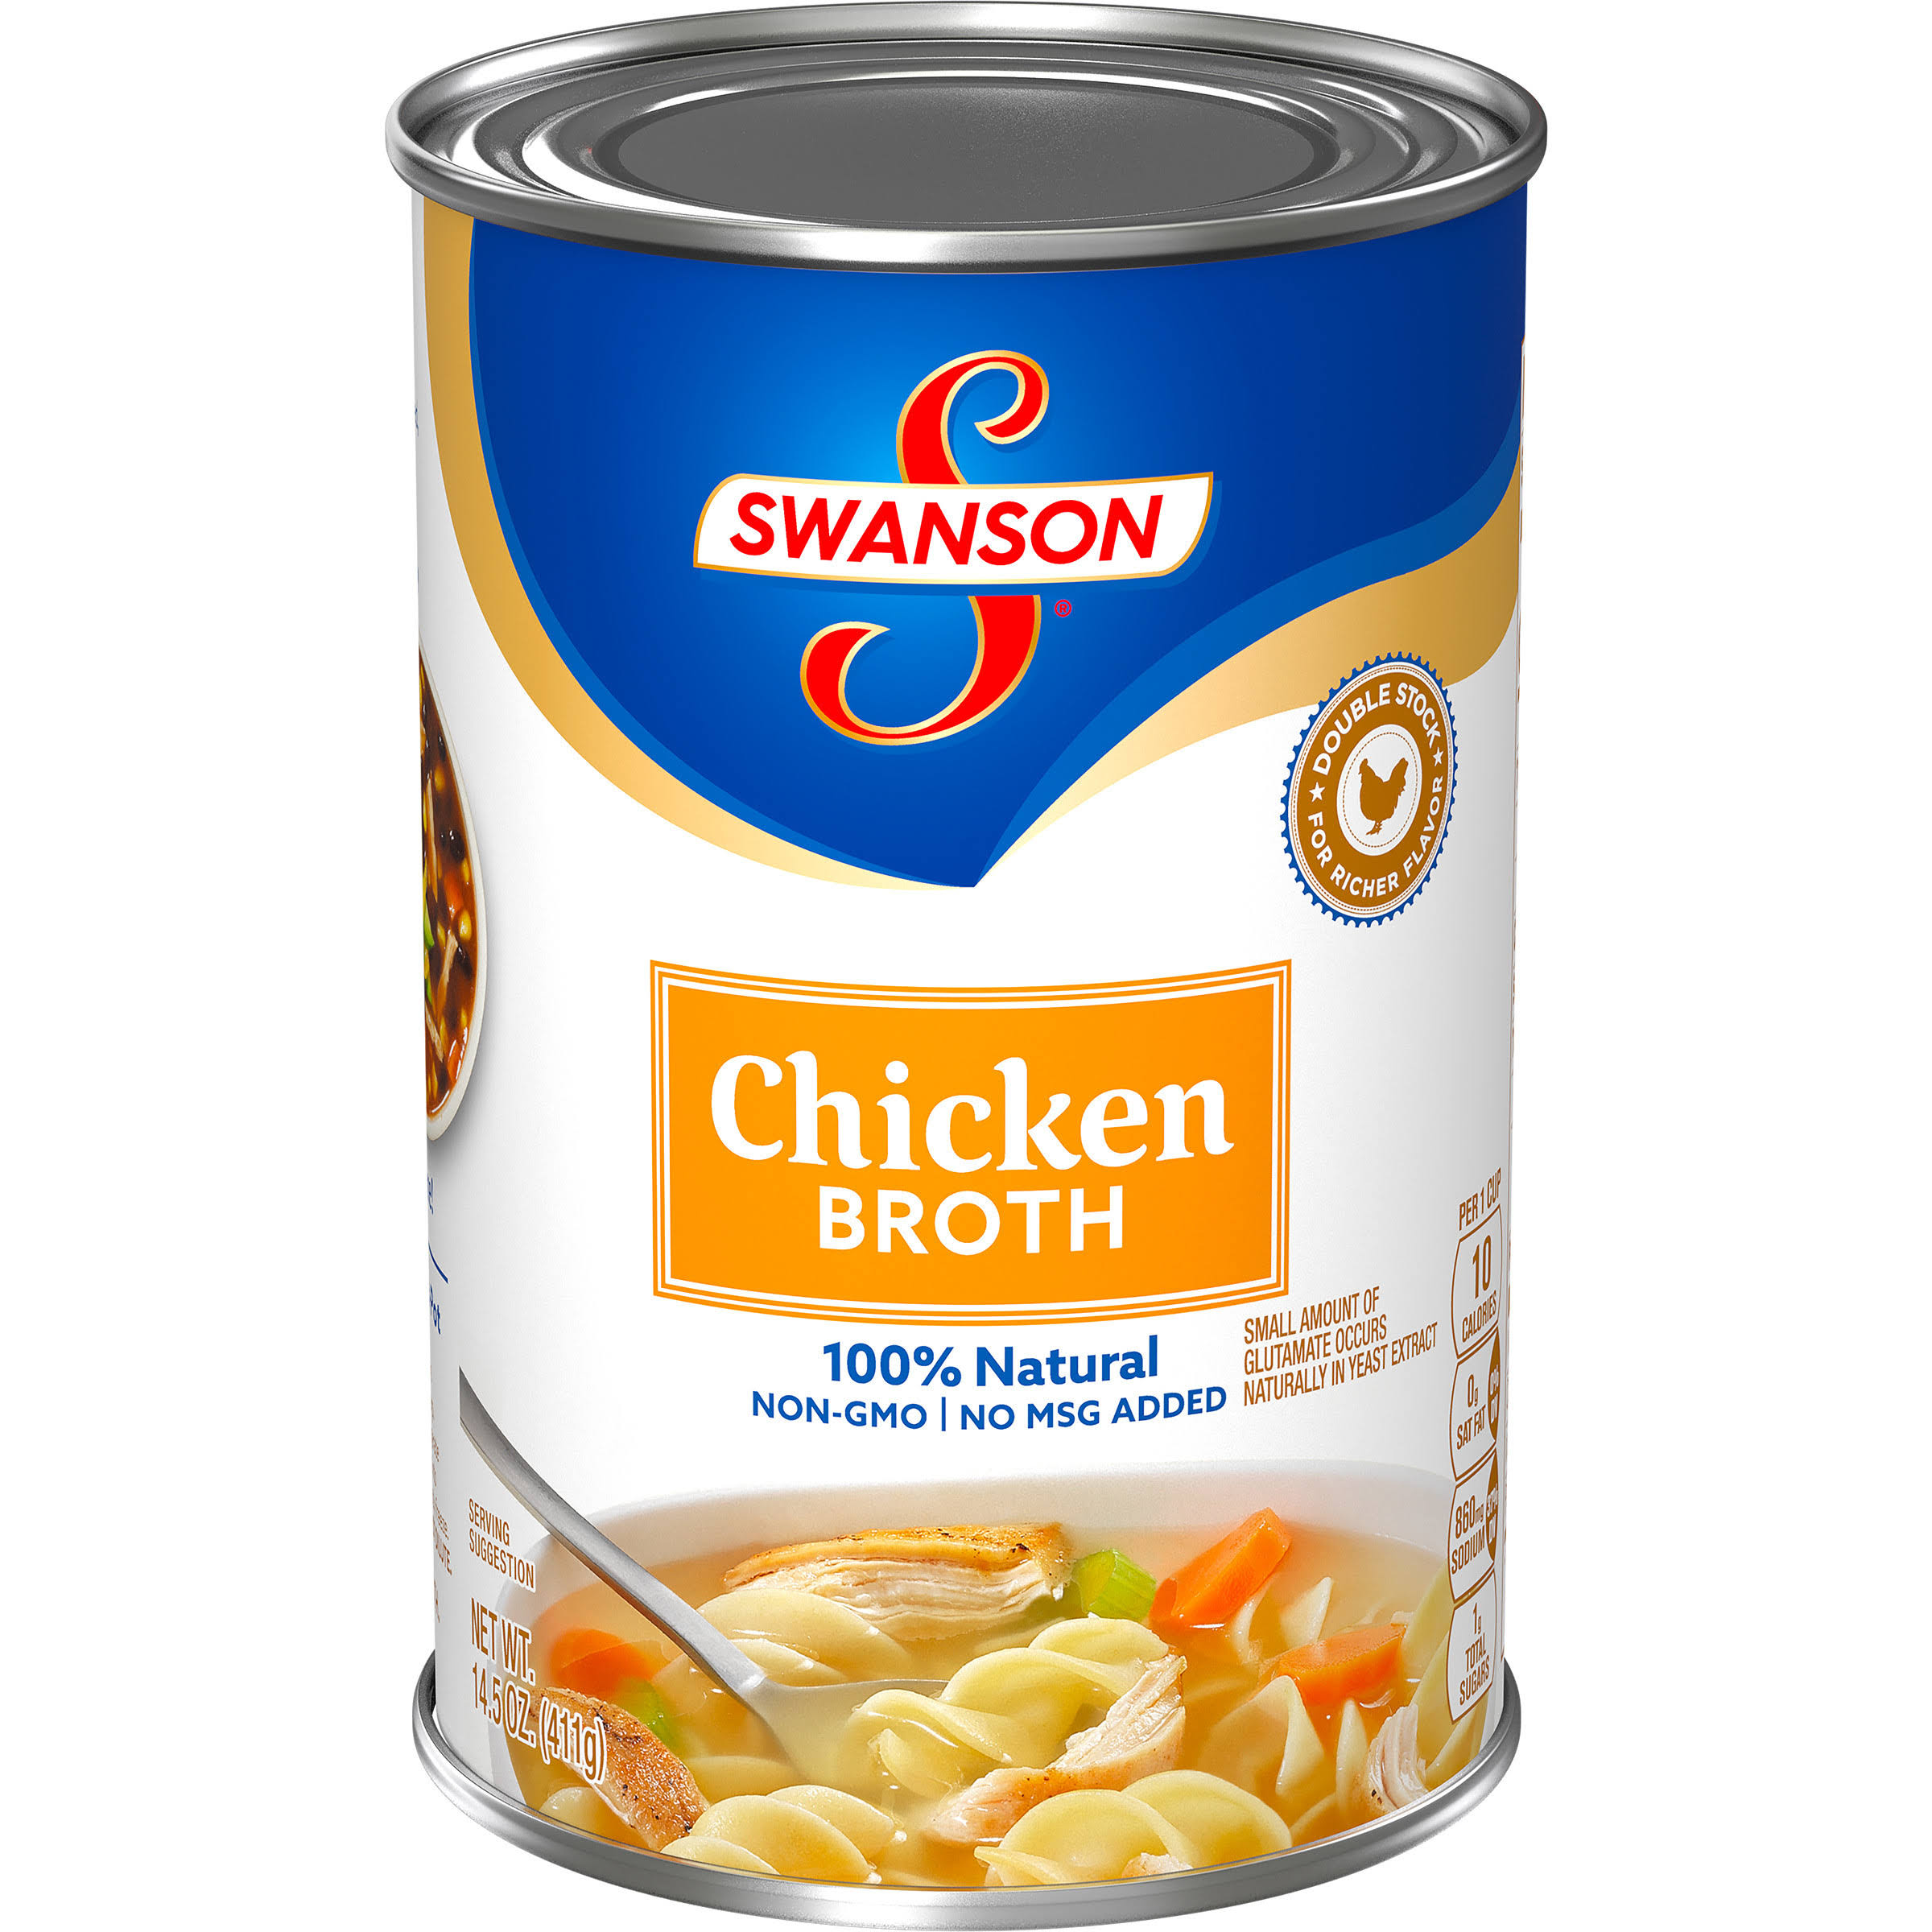 Swanson Chicken Broth - 14.5oz